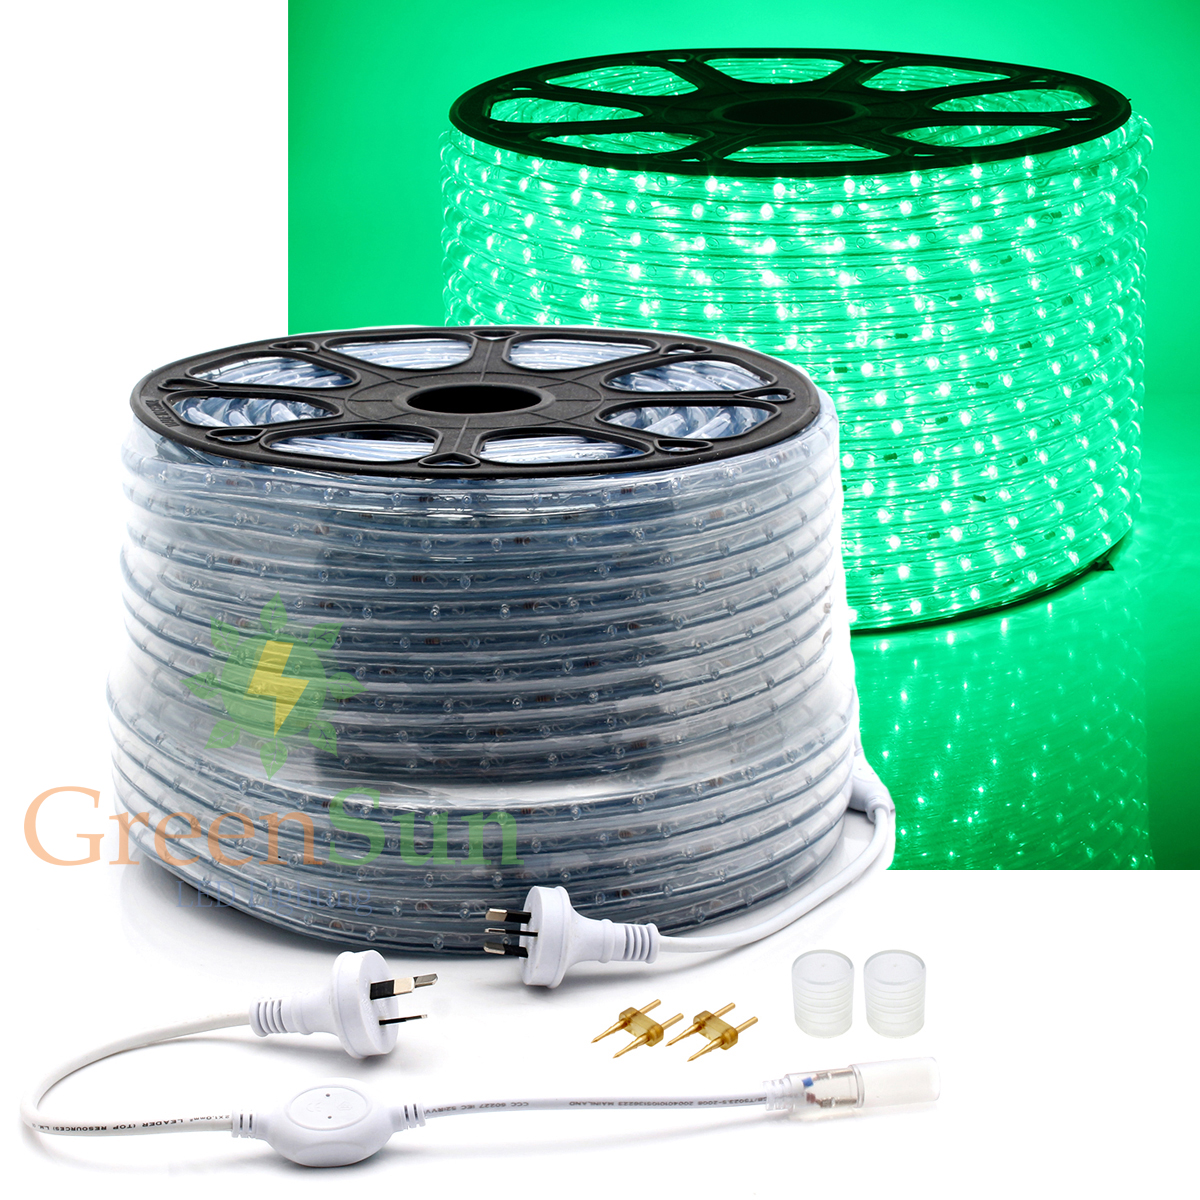 small resolution of aliexpress com buy 20 50m green led strip light 36leds m 2 wire waterproof ip68 home garden xmas lamp led strip light with power line from reliable led